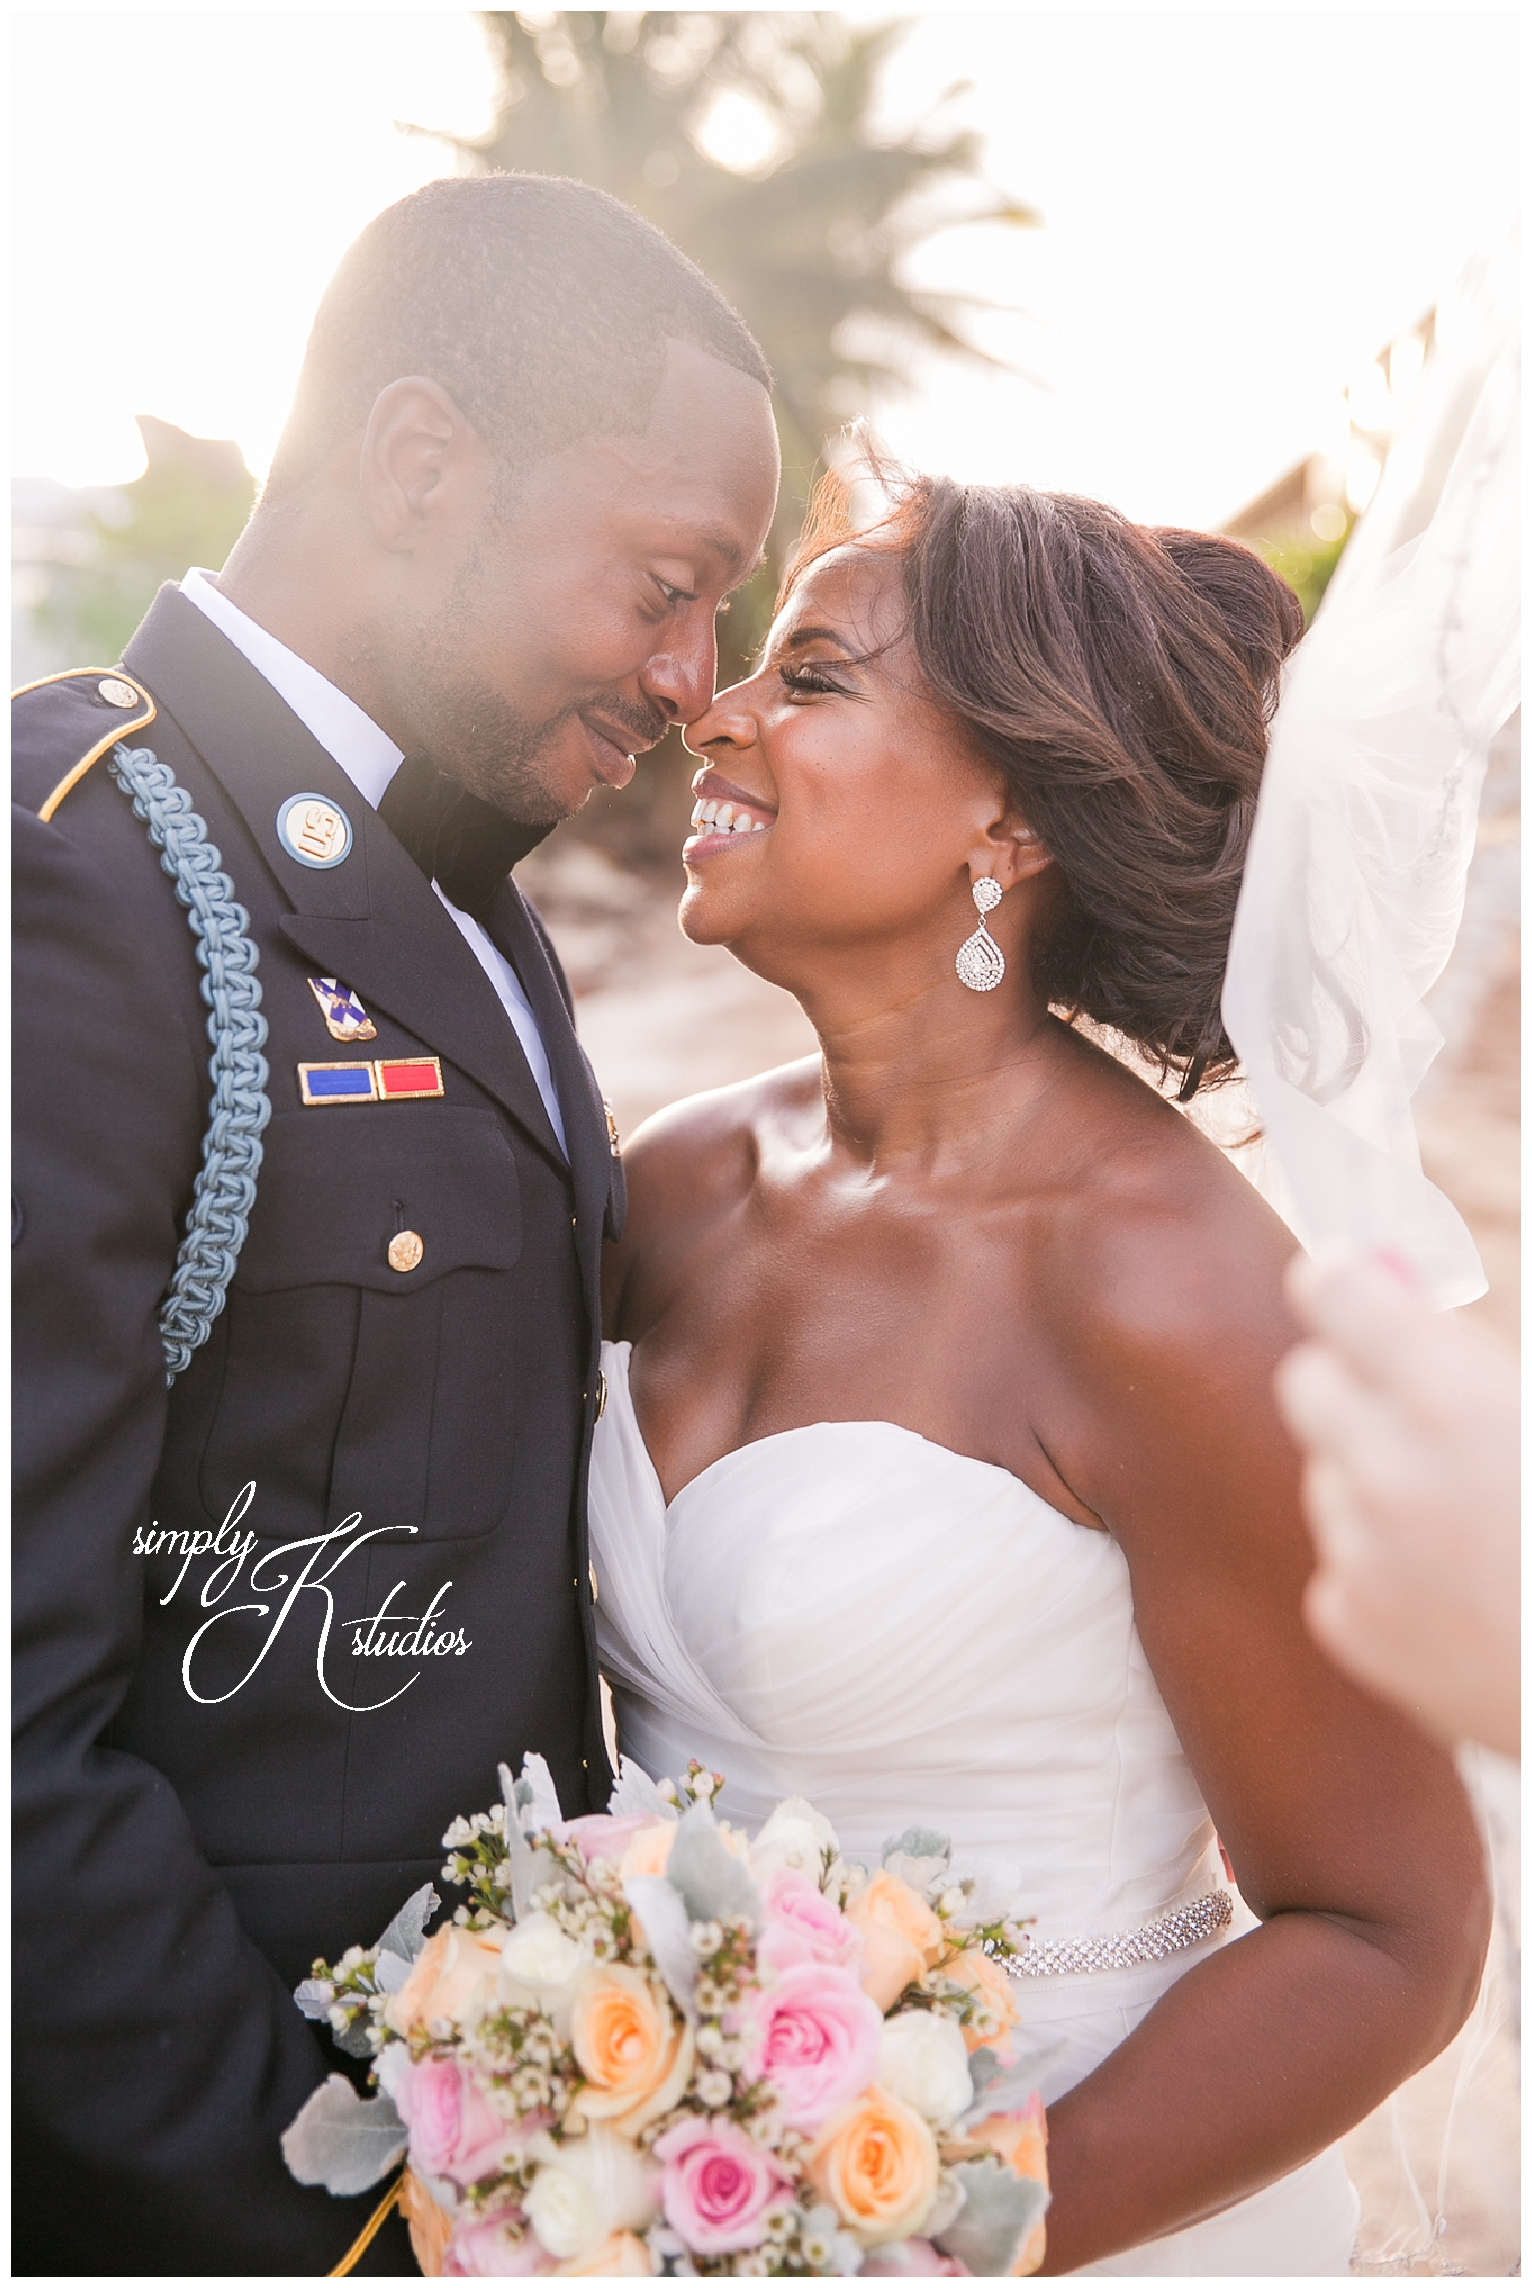 Simply K Studios Connecticut Wedding Photographers.jpg